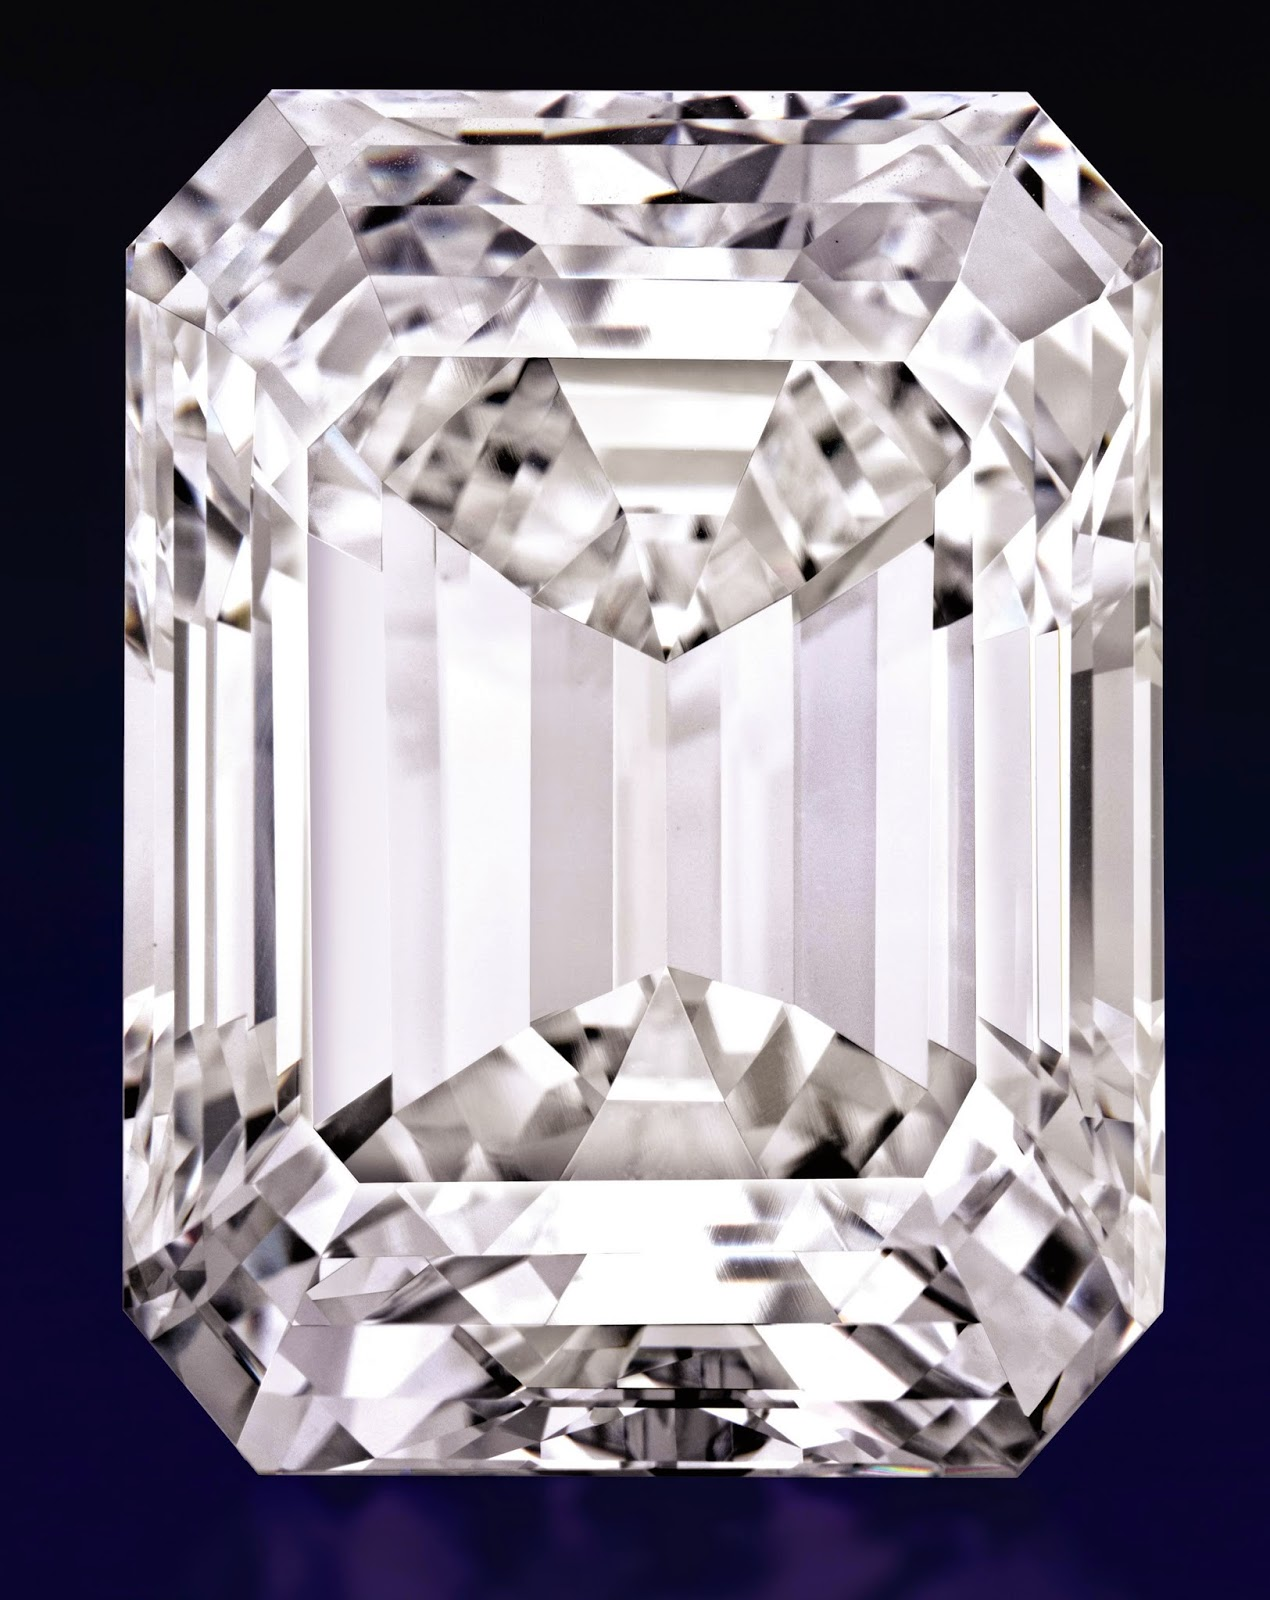 88ab96f5e It took more than a year to study, cut and polish the rough into the  100-carat diamond.